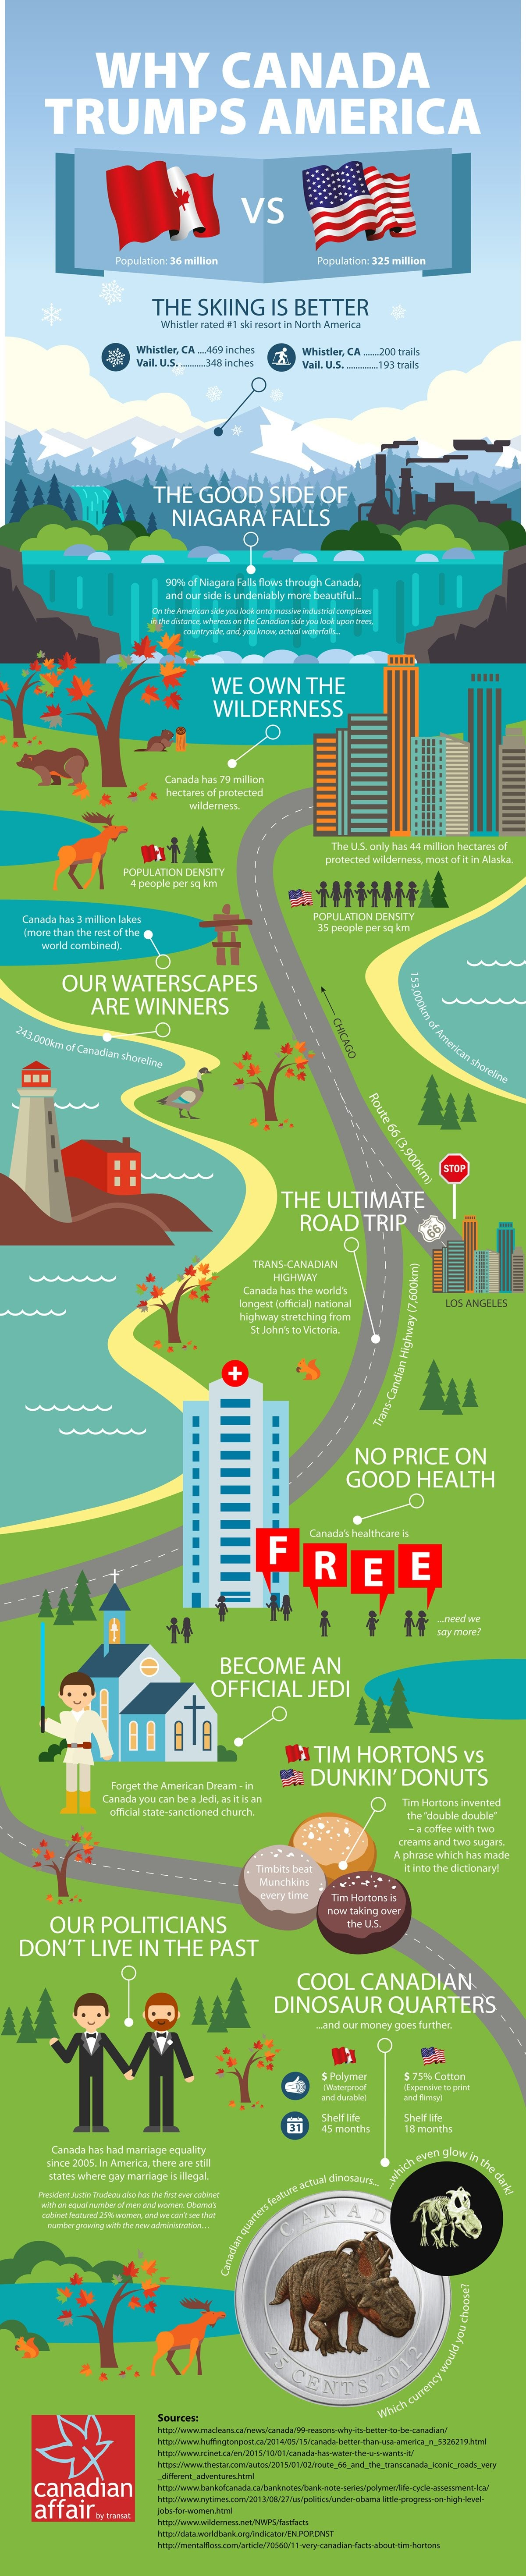 Why Canada Trumps America #infographic